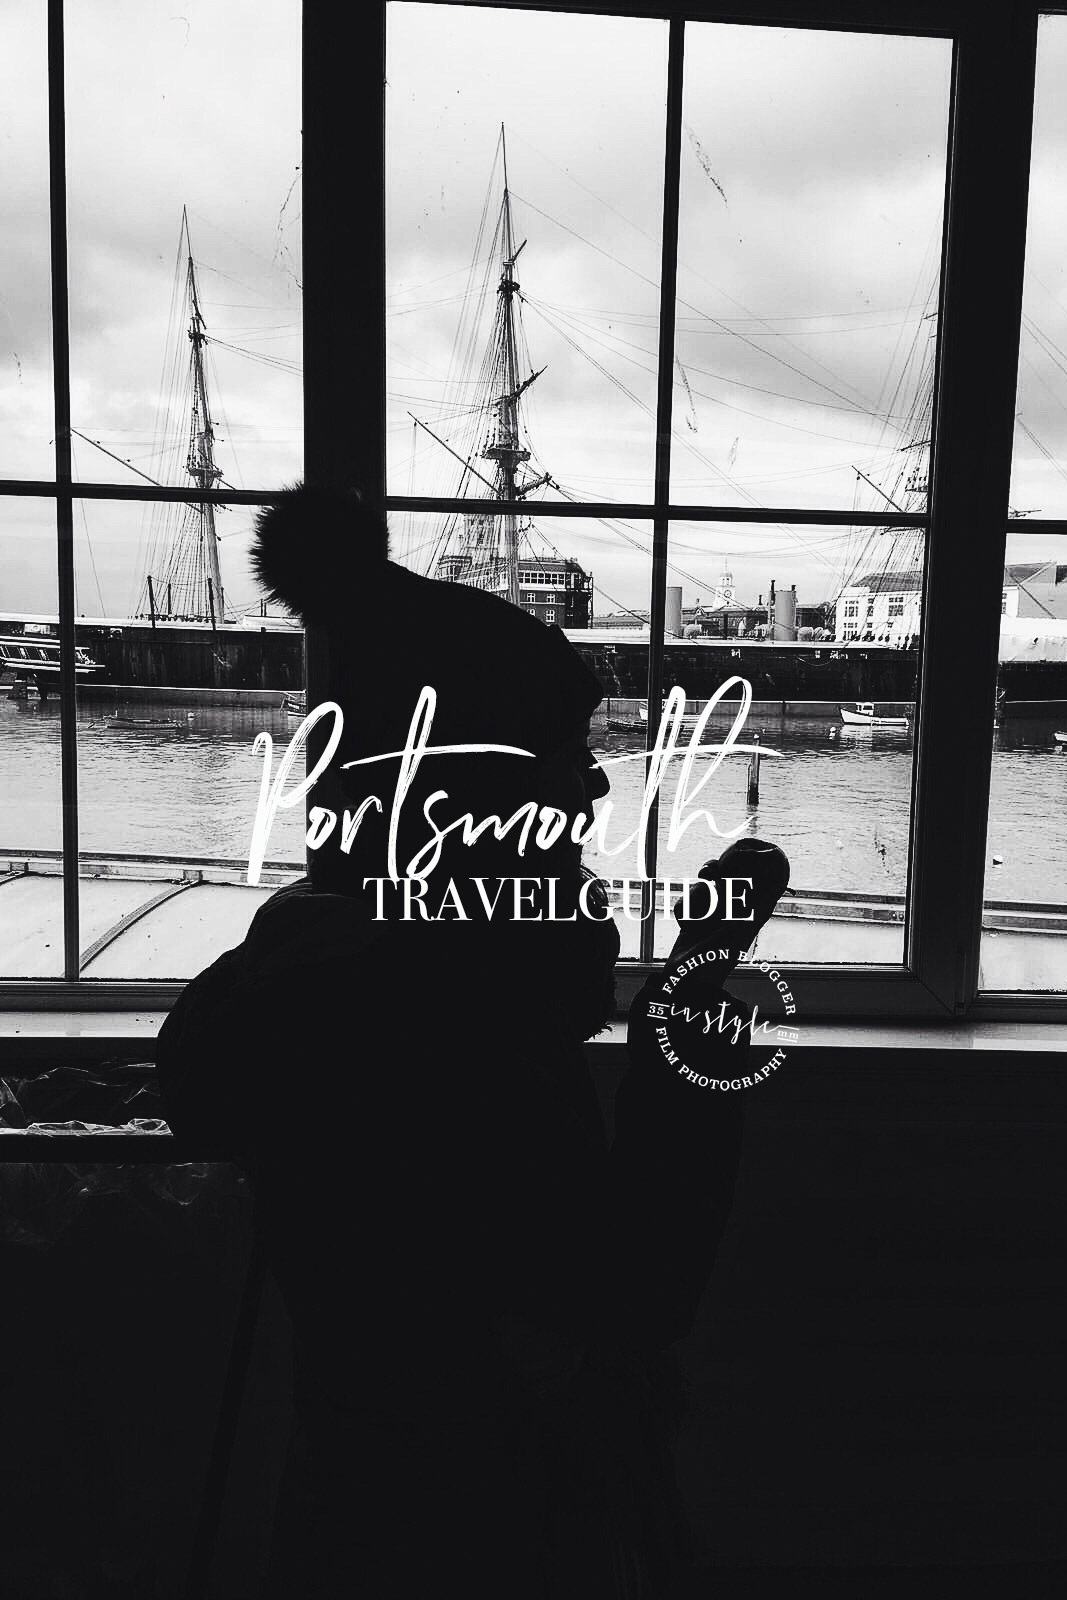 Portsmouth Travel Guide 35mminstyle